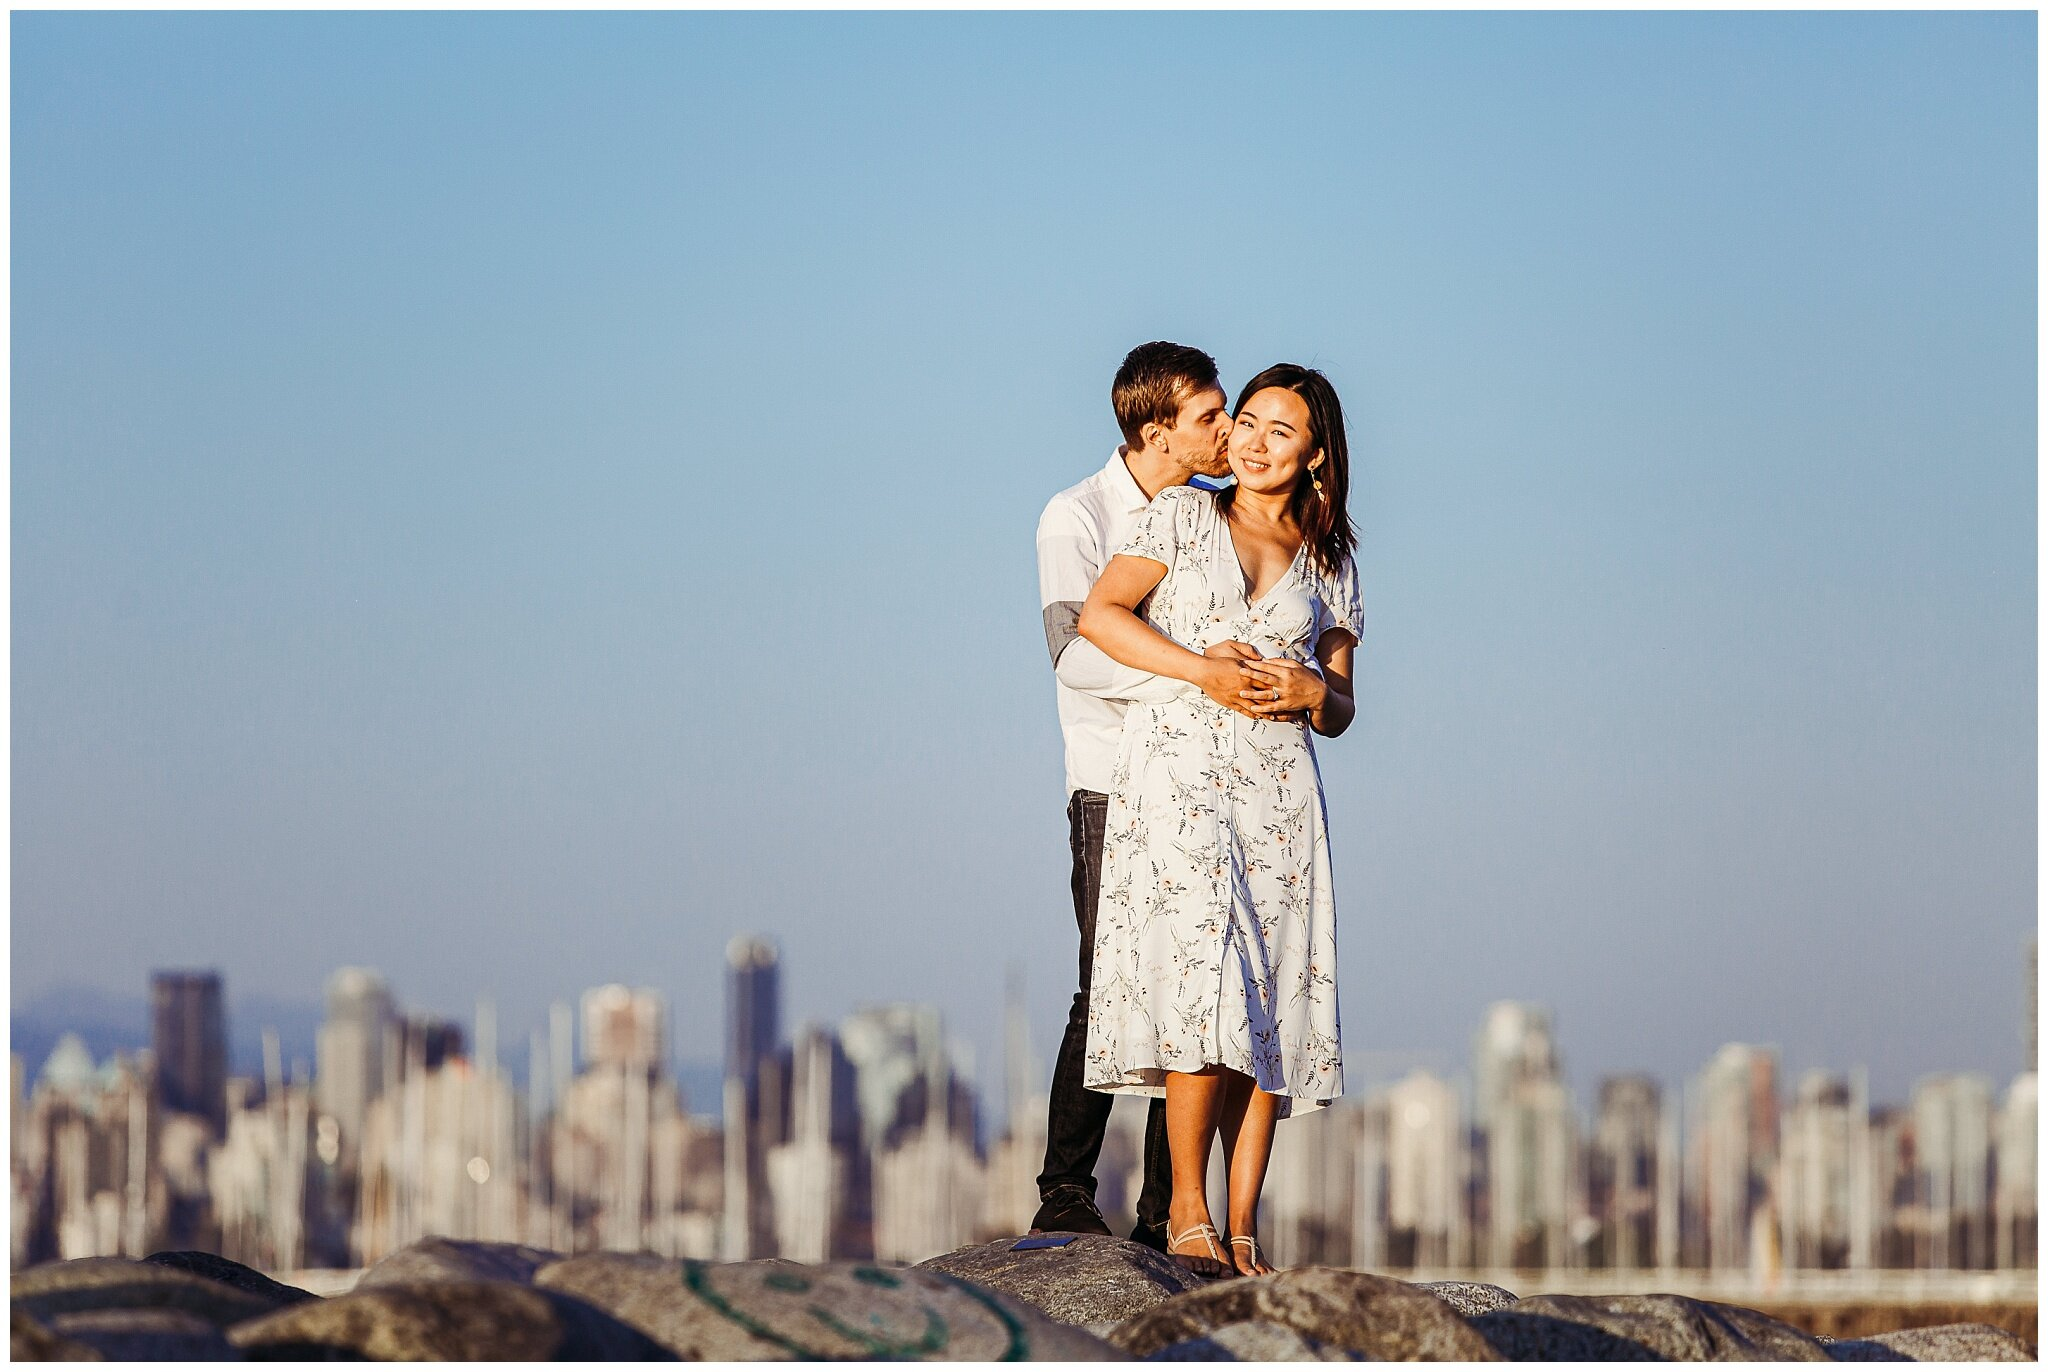 Vancouver Spanish Banks Engagement Photographer City Skyline Romantic Couples_0009.jpg